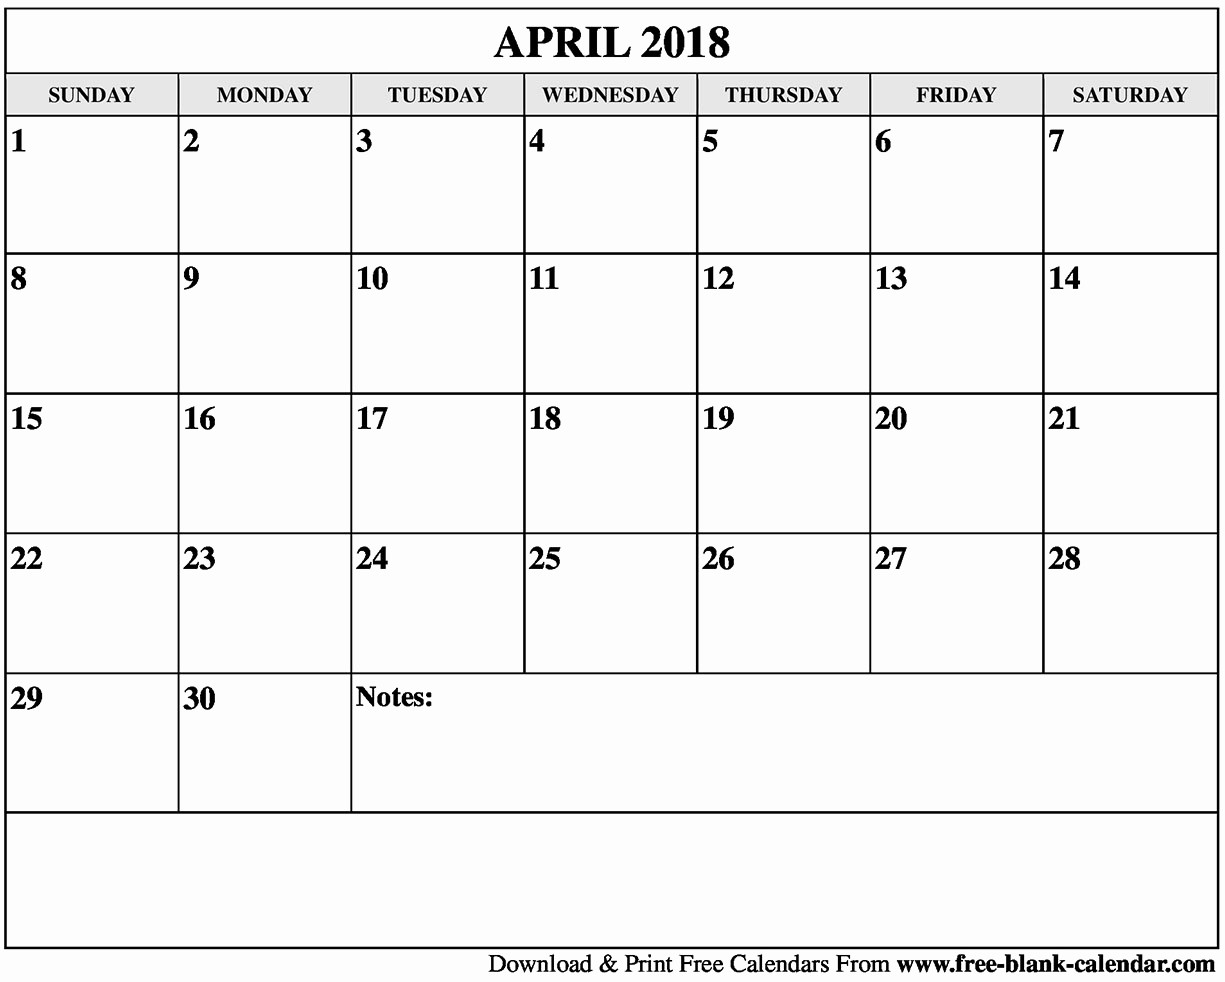 Blank April 2018 Calendar Template Luxury Blank April 2018 Calendar Printable